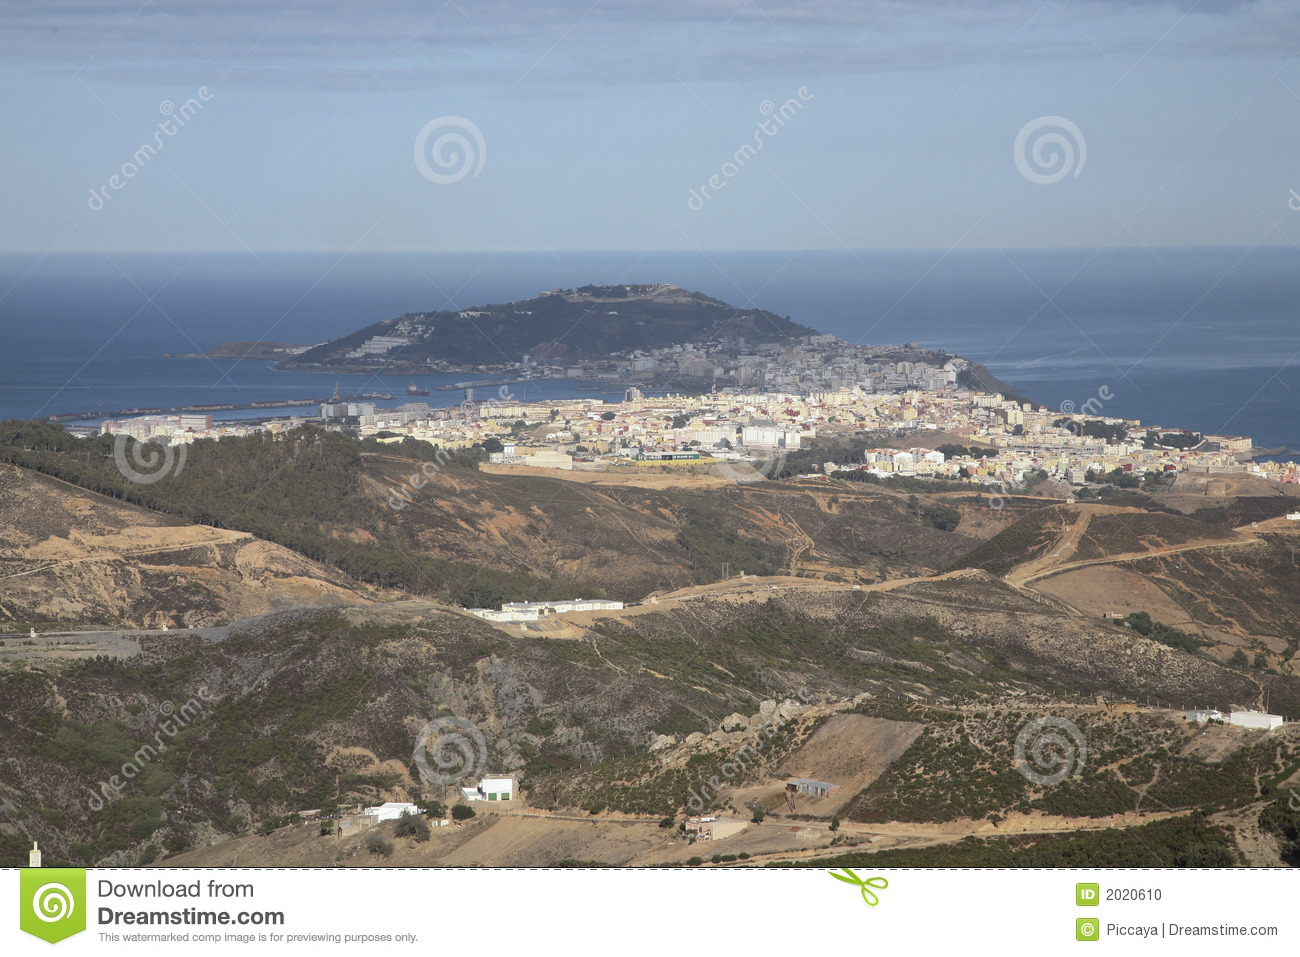 Straits of gibraltar stock photo image 2020610 - Moroccan port on the strait of gibraltar ...